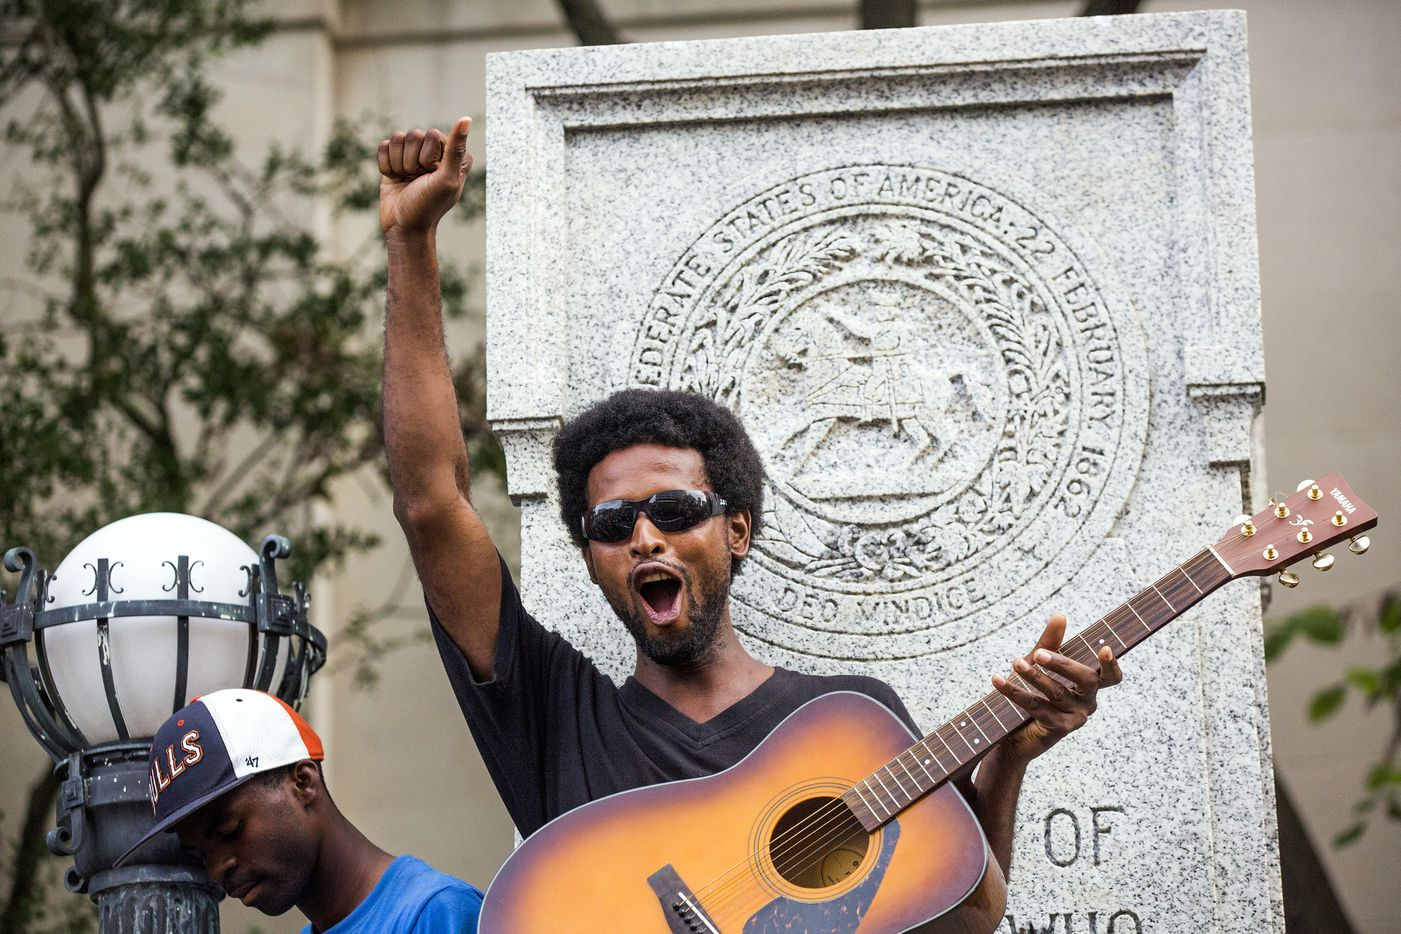 Isaiah Wallace plays his guitar standing on the base that formerly supported a Confederate soldier statue after a group of protesters pulled it down during a rally Monday, Aug. 14, 2017, in Durham, N.C. Protesters toppled the nearly century-old statue of a Confederate soldier Monday at the rally against racism. The Durham protest was in response to a white nationalist rally held in Charlottesville, Va., over the weekend.